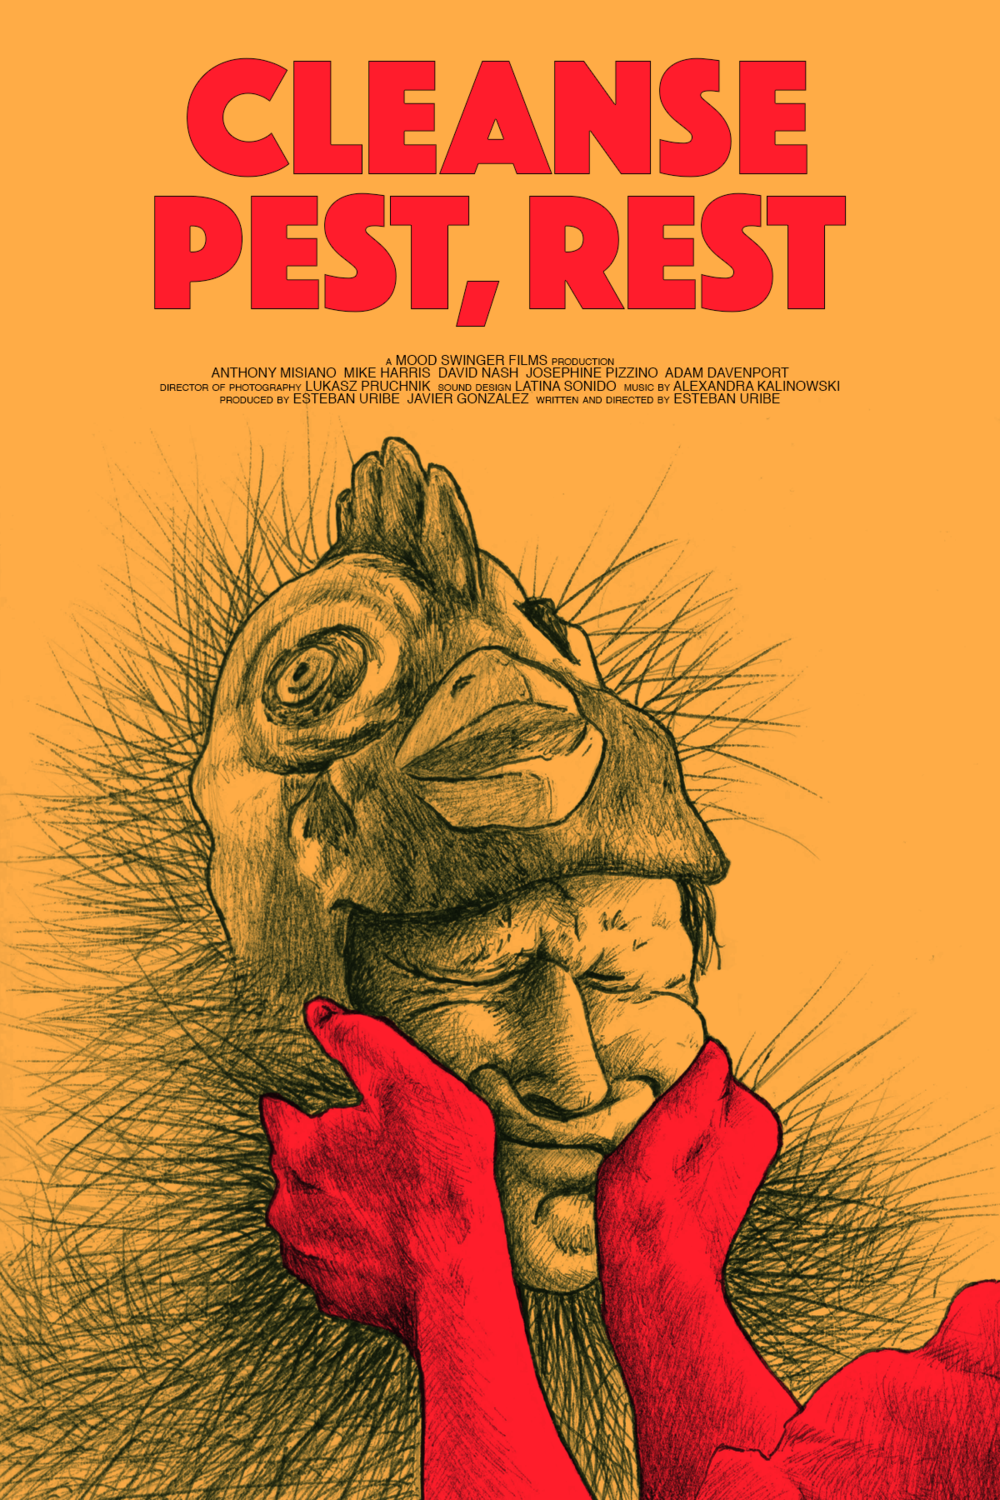 """Cleanse Pest, Rest"""